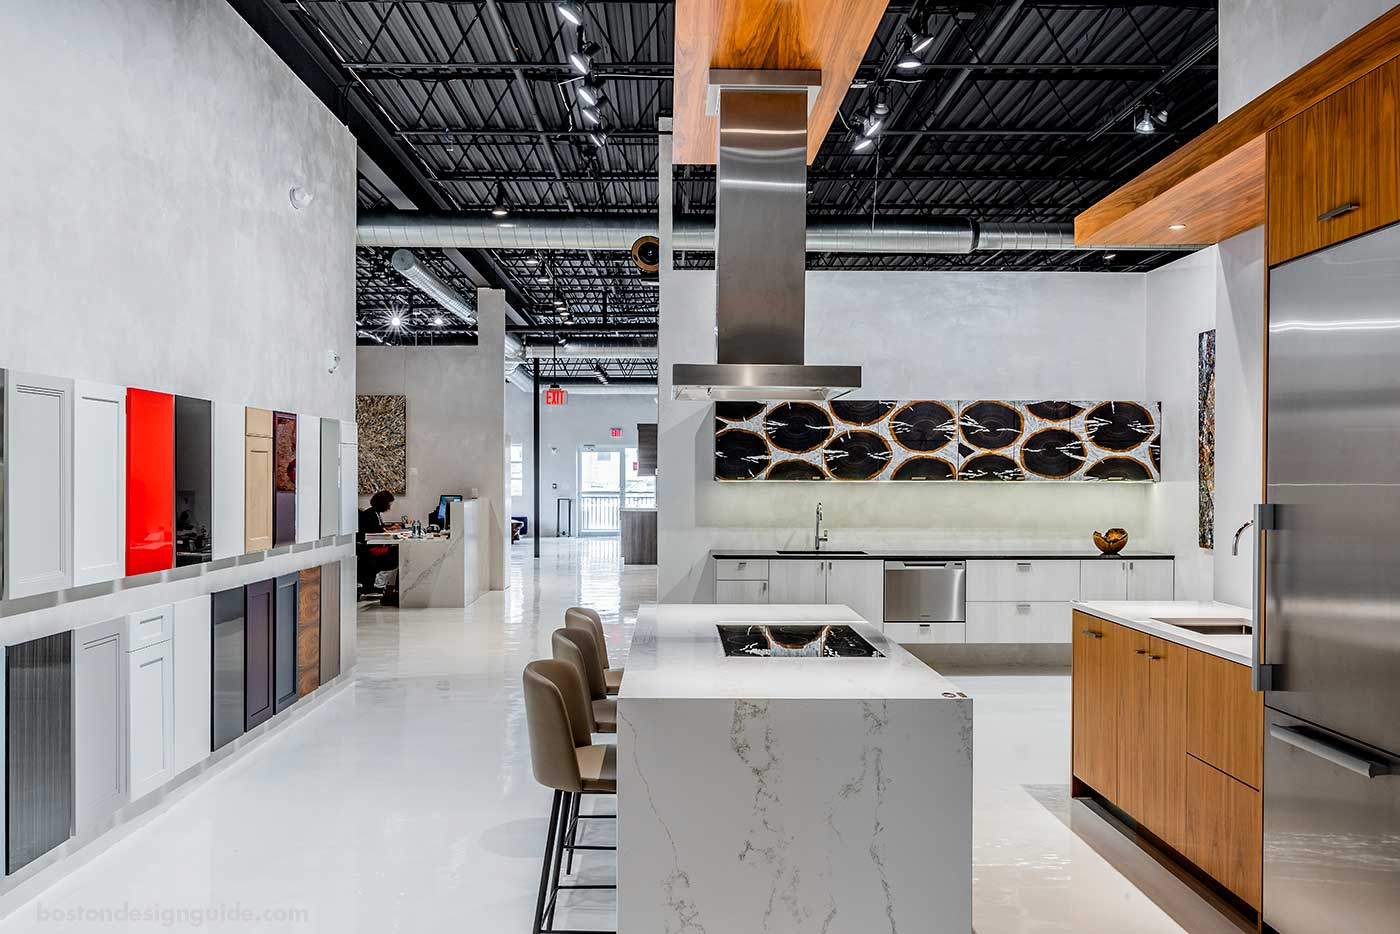 Inside Newton Kitchen & Design's new showroom